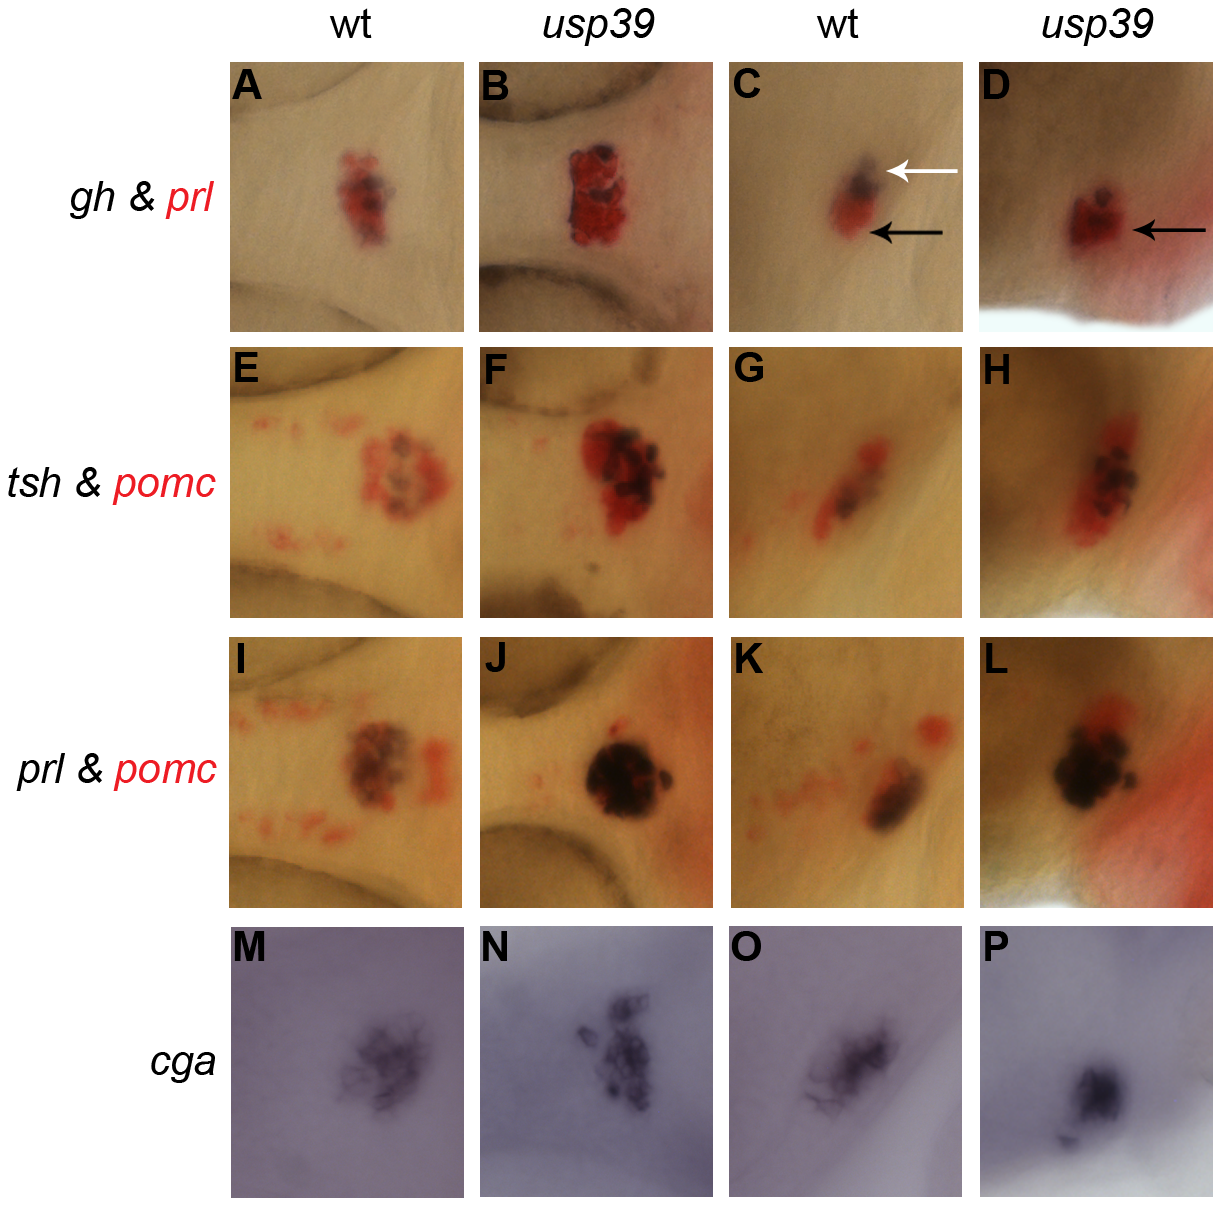 <i>usp39</i> mutation lead to expansion of all pituitary cell lineages at 48 hpf as indicated by pituitary hormone markers.